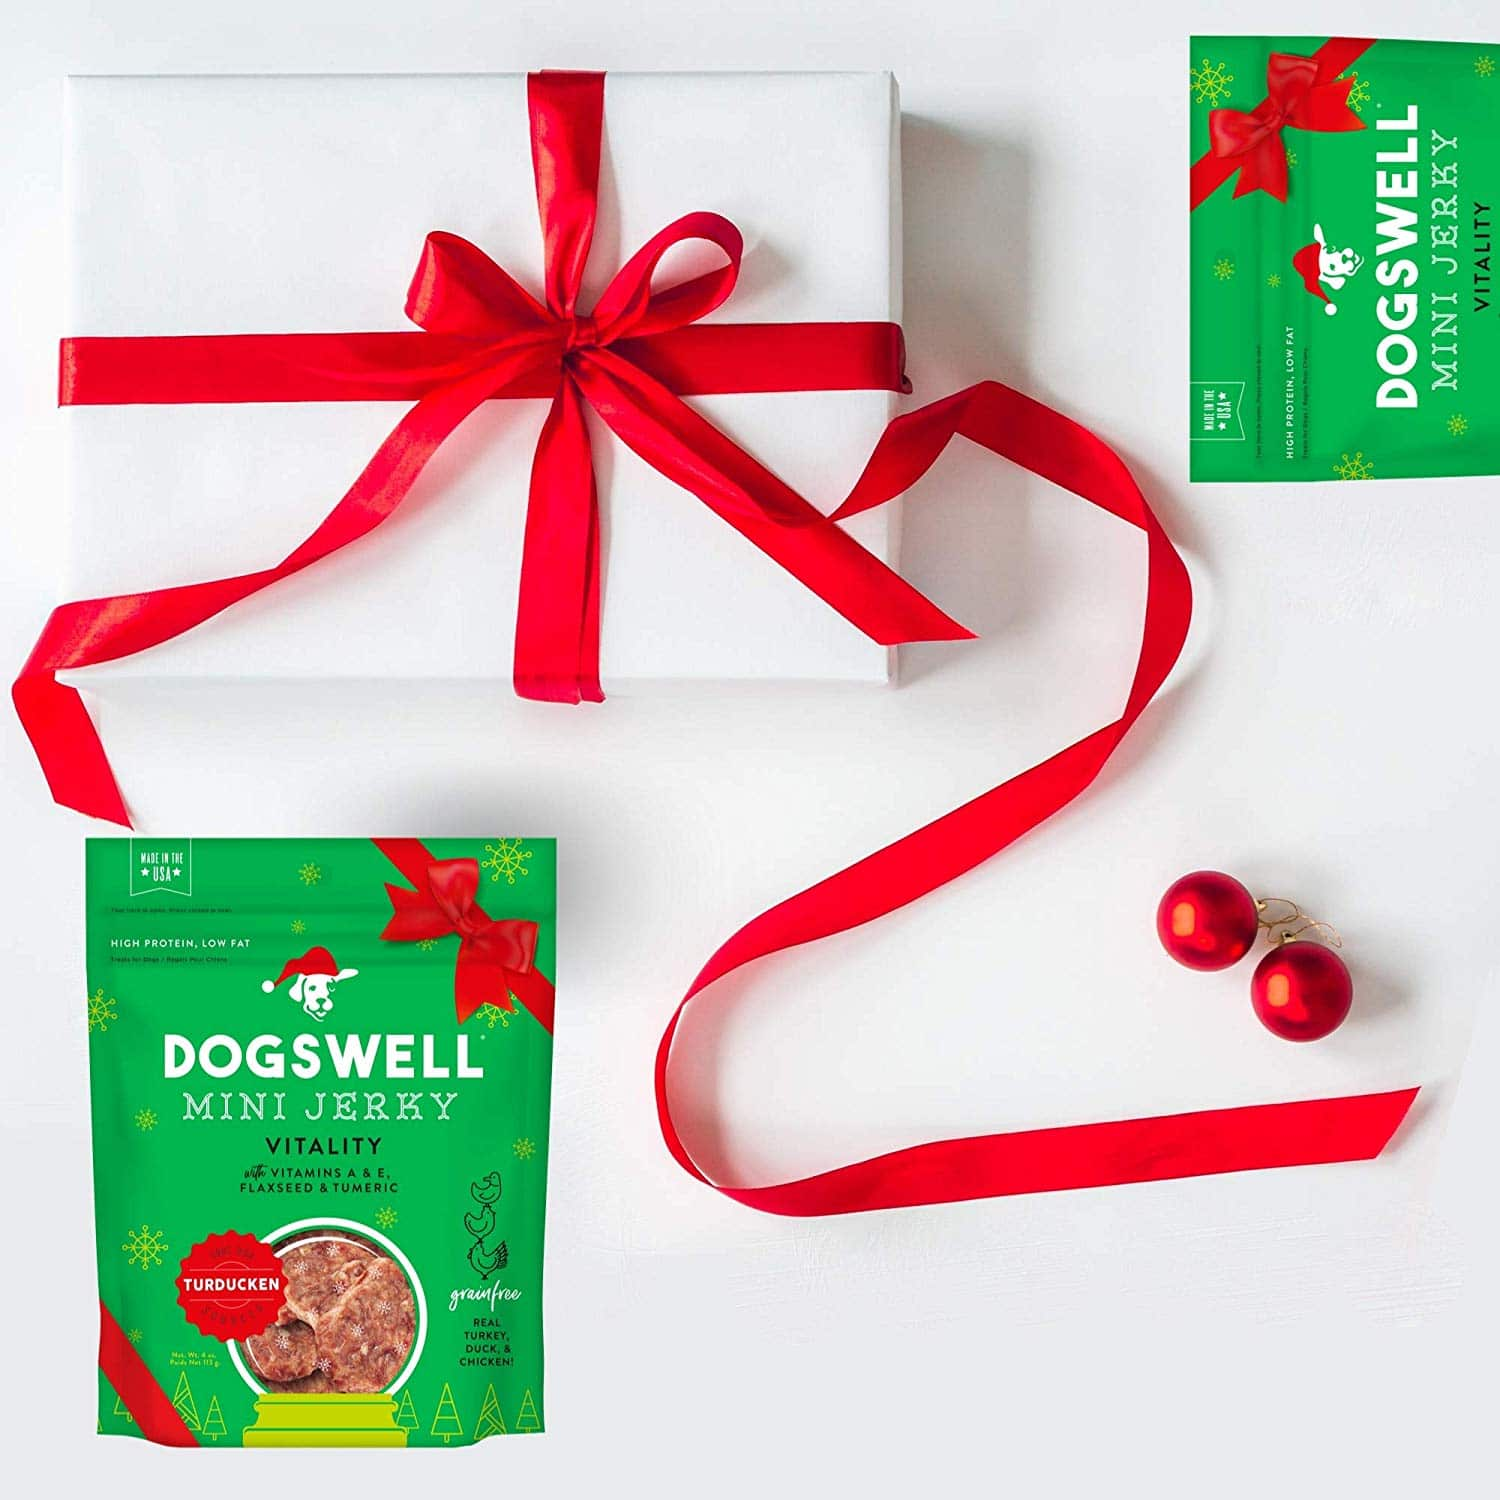 Dogswell Meat Jerky Treats. Gift your dog walkers, dog trainers, dog groomers, dog owners, dog parents, and any other dog lover with this limited edition holiday treat! It's not the holiday season without Turkey, Duck, and chicken!